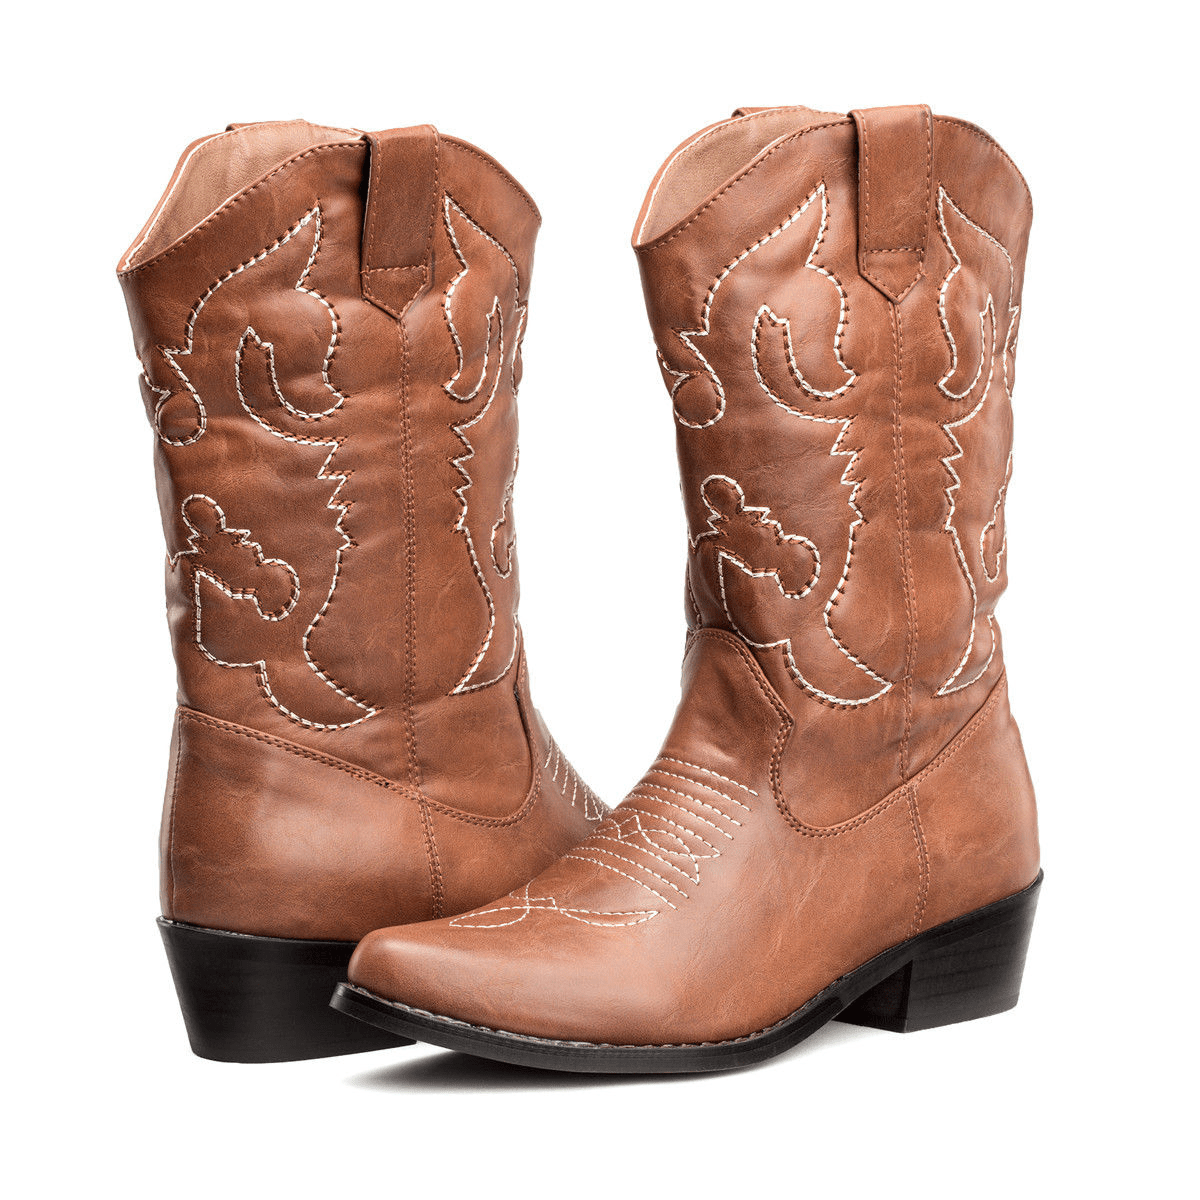 47db57de3c2 How to make your first cowboy boots comfortable for winter wear ...